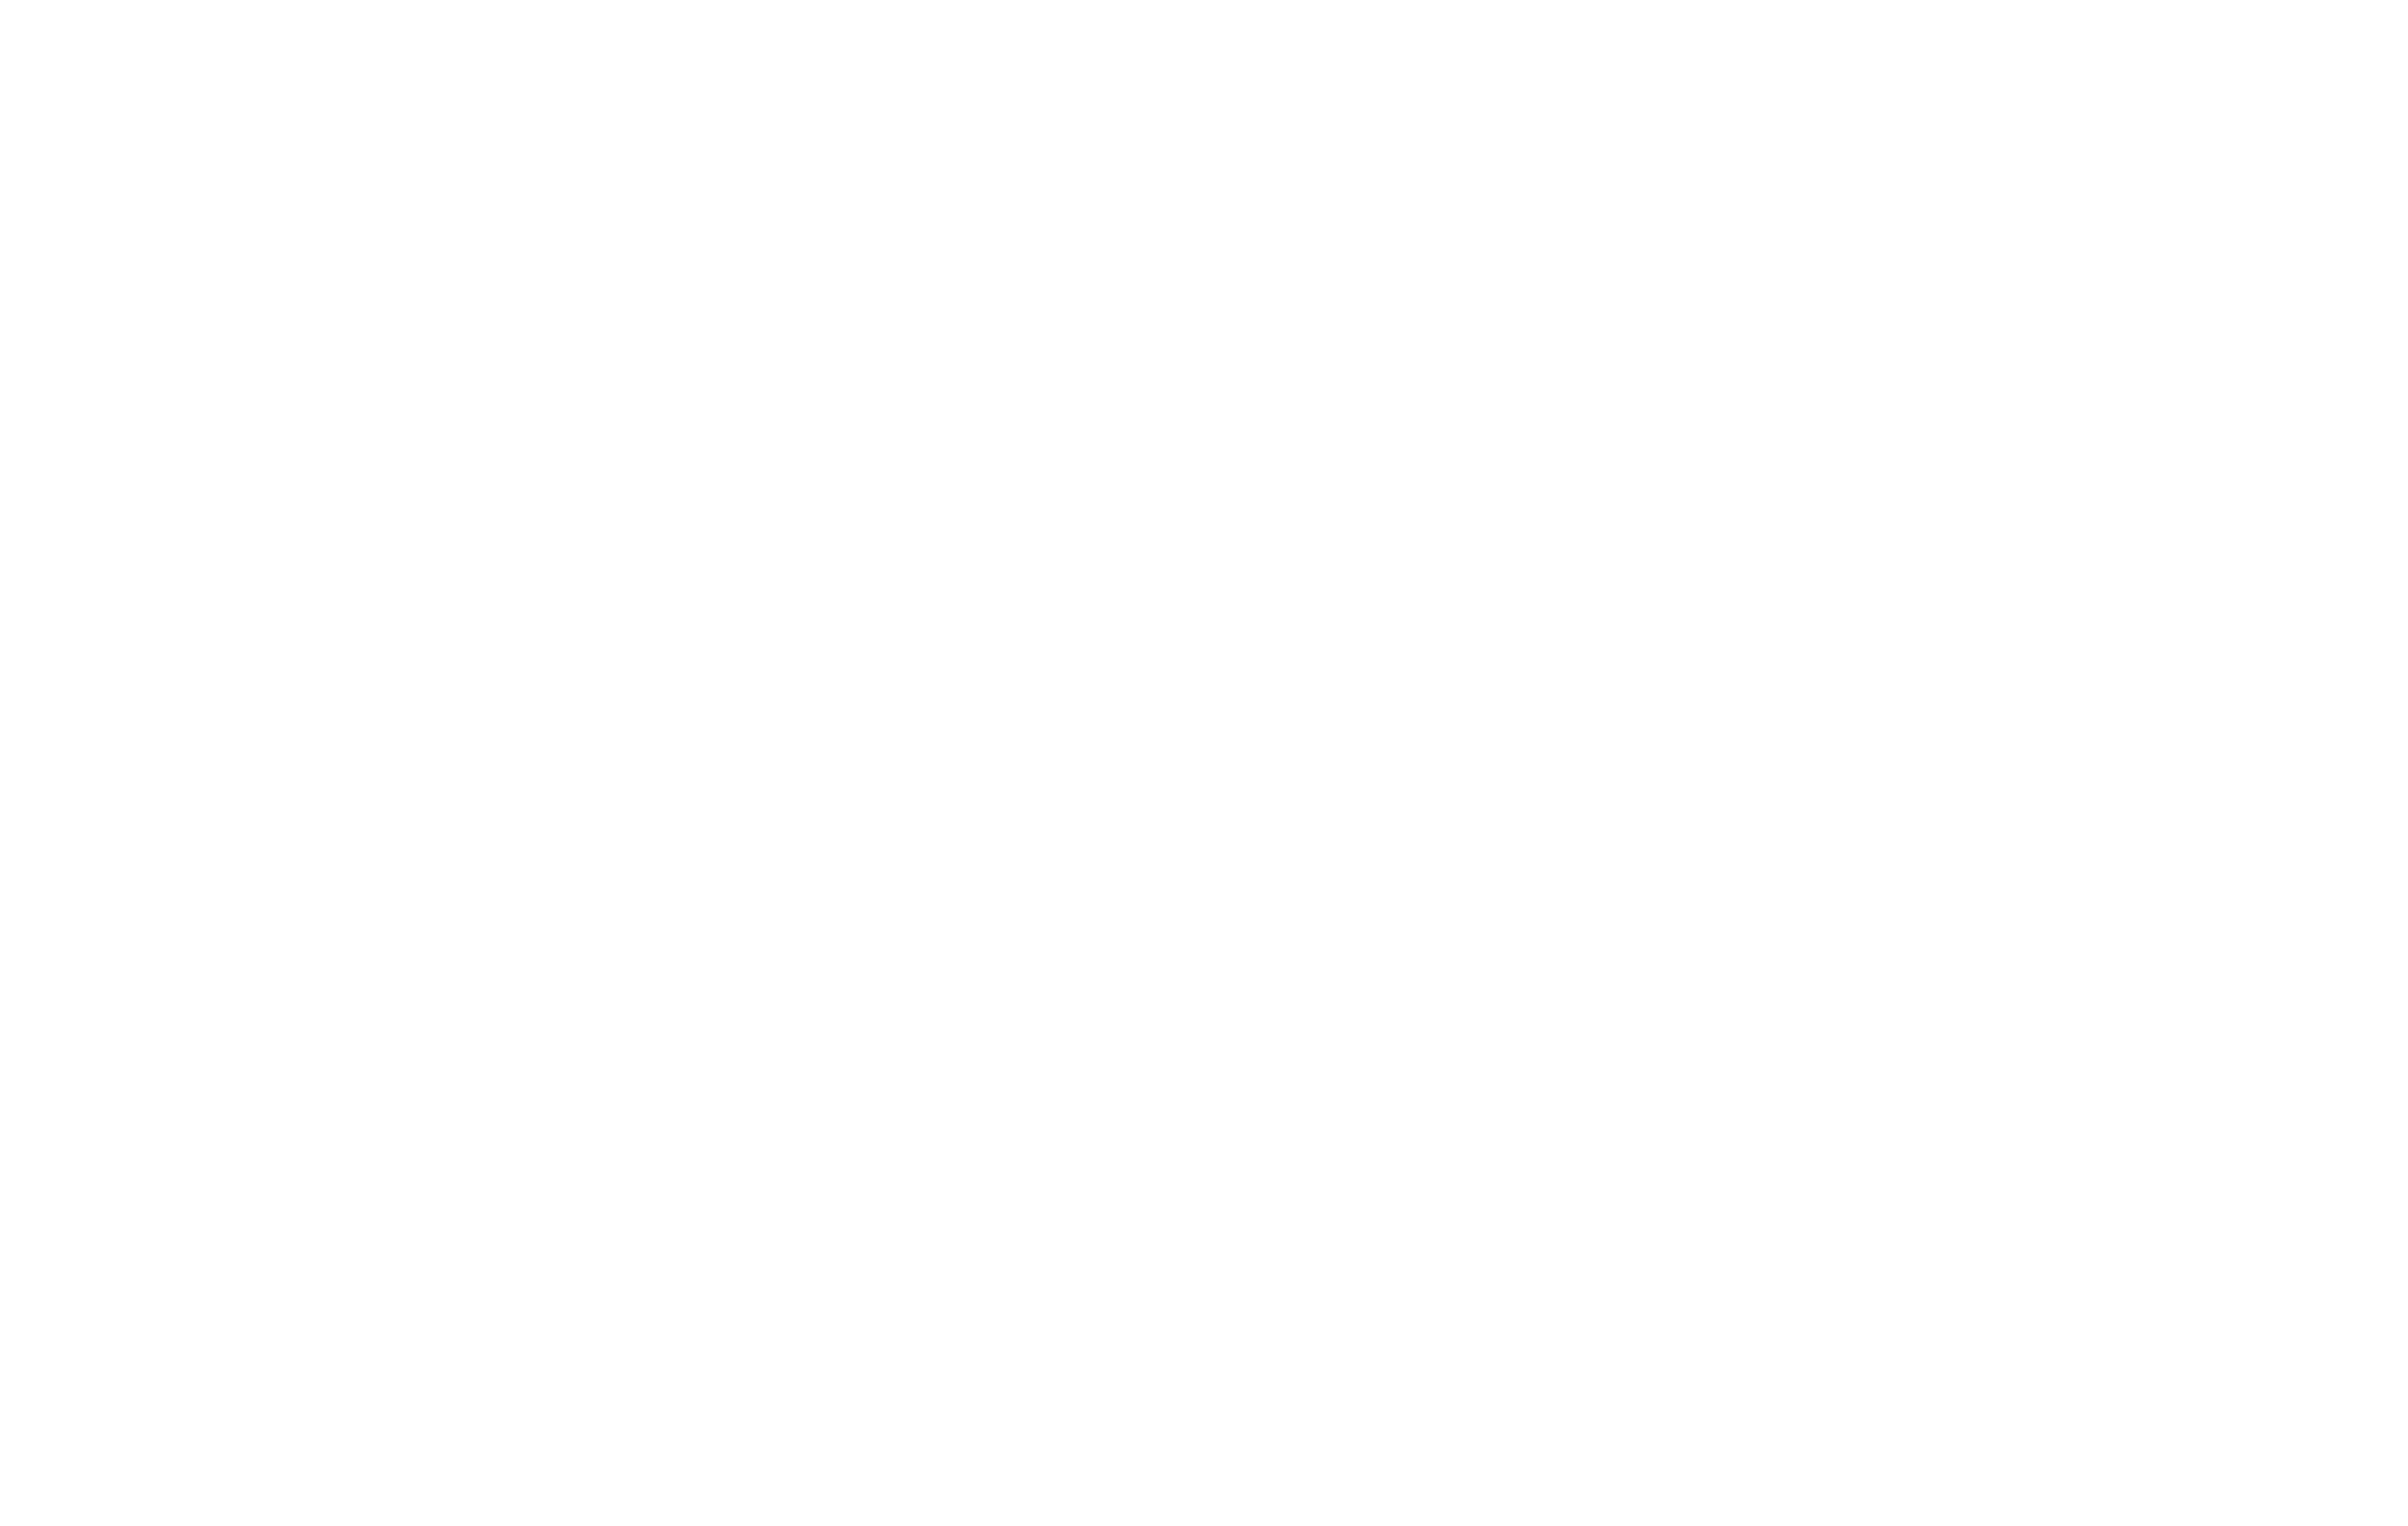 Techstars white